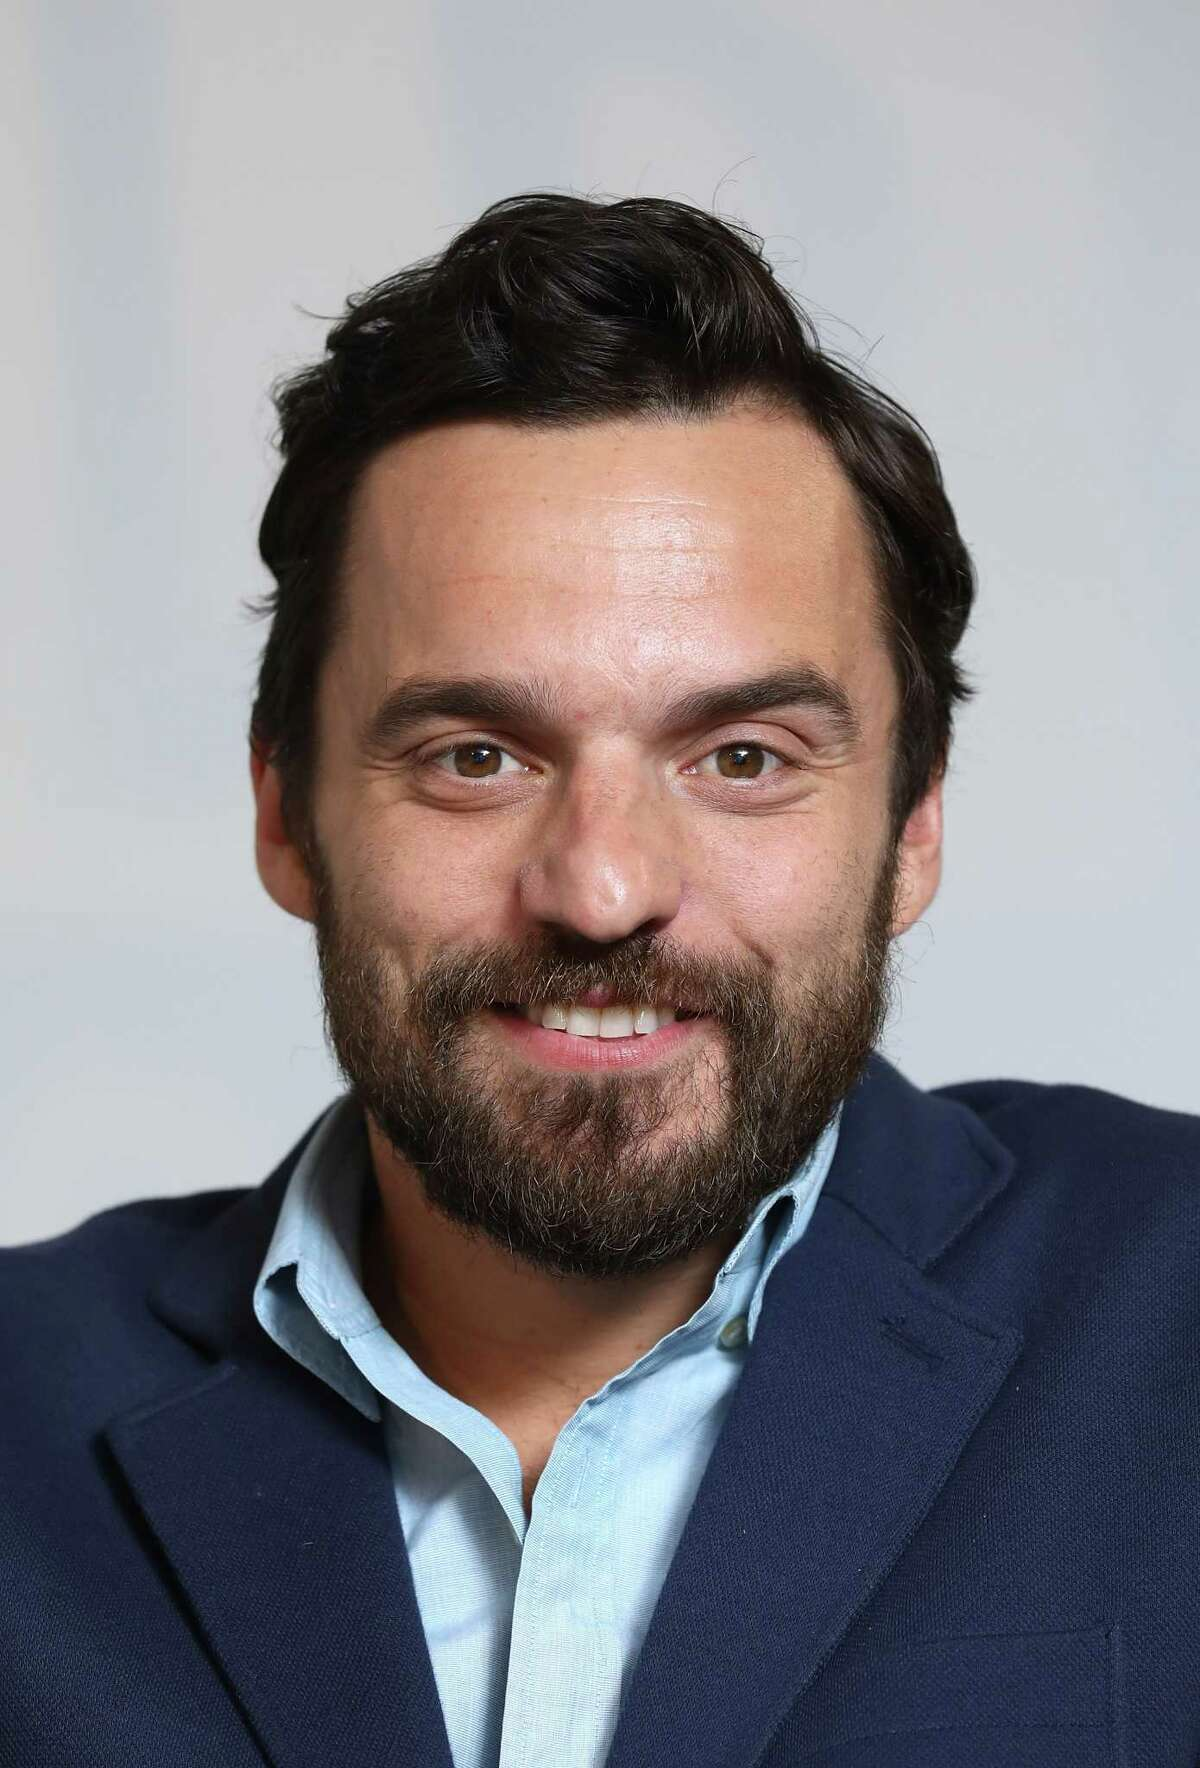 LONDON, ENGLAND - JUNE 01: Actor Jake Johnson from the cast of The Mummy poses for a photo at the Build LDN event at AOL London on June 1, 2017 in London, England. (Photo by Tim P. Whitby/Tim P. Whitby/Getty Images)